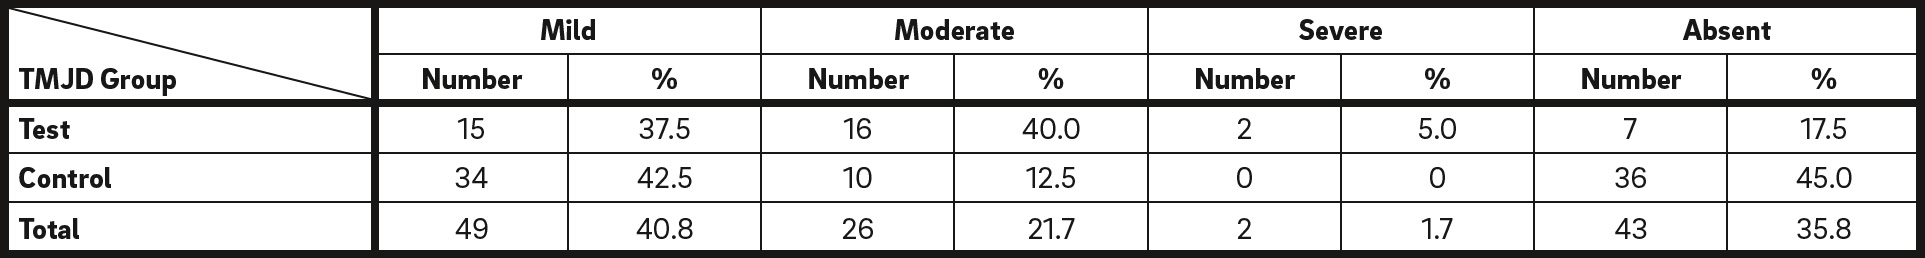 Table 2 Absolute and relative values of the sample according to severity of temporomandibular dysfunction.